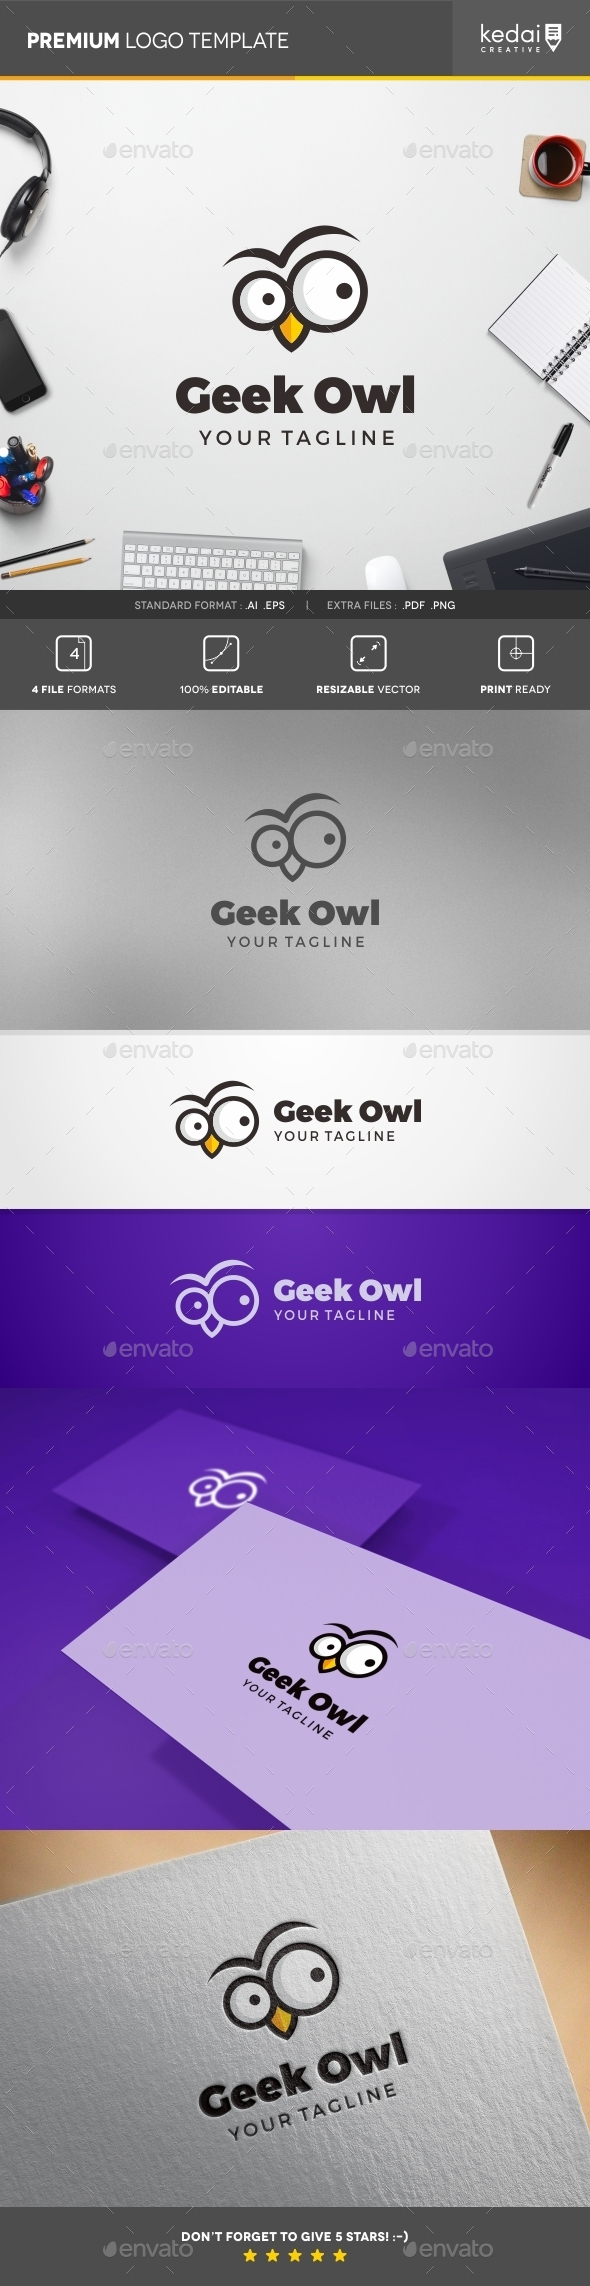 GraphicRiver Geek Owl 10730687